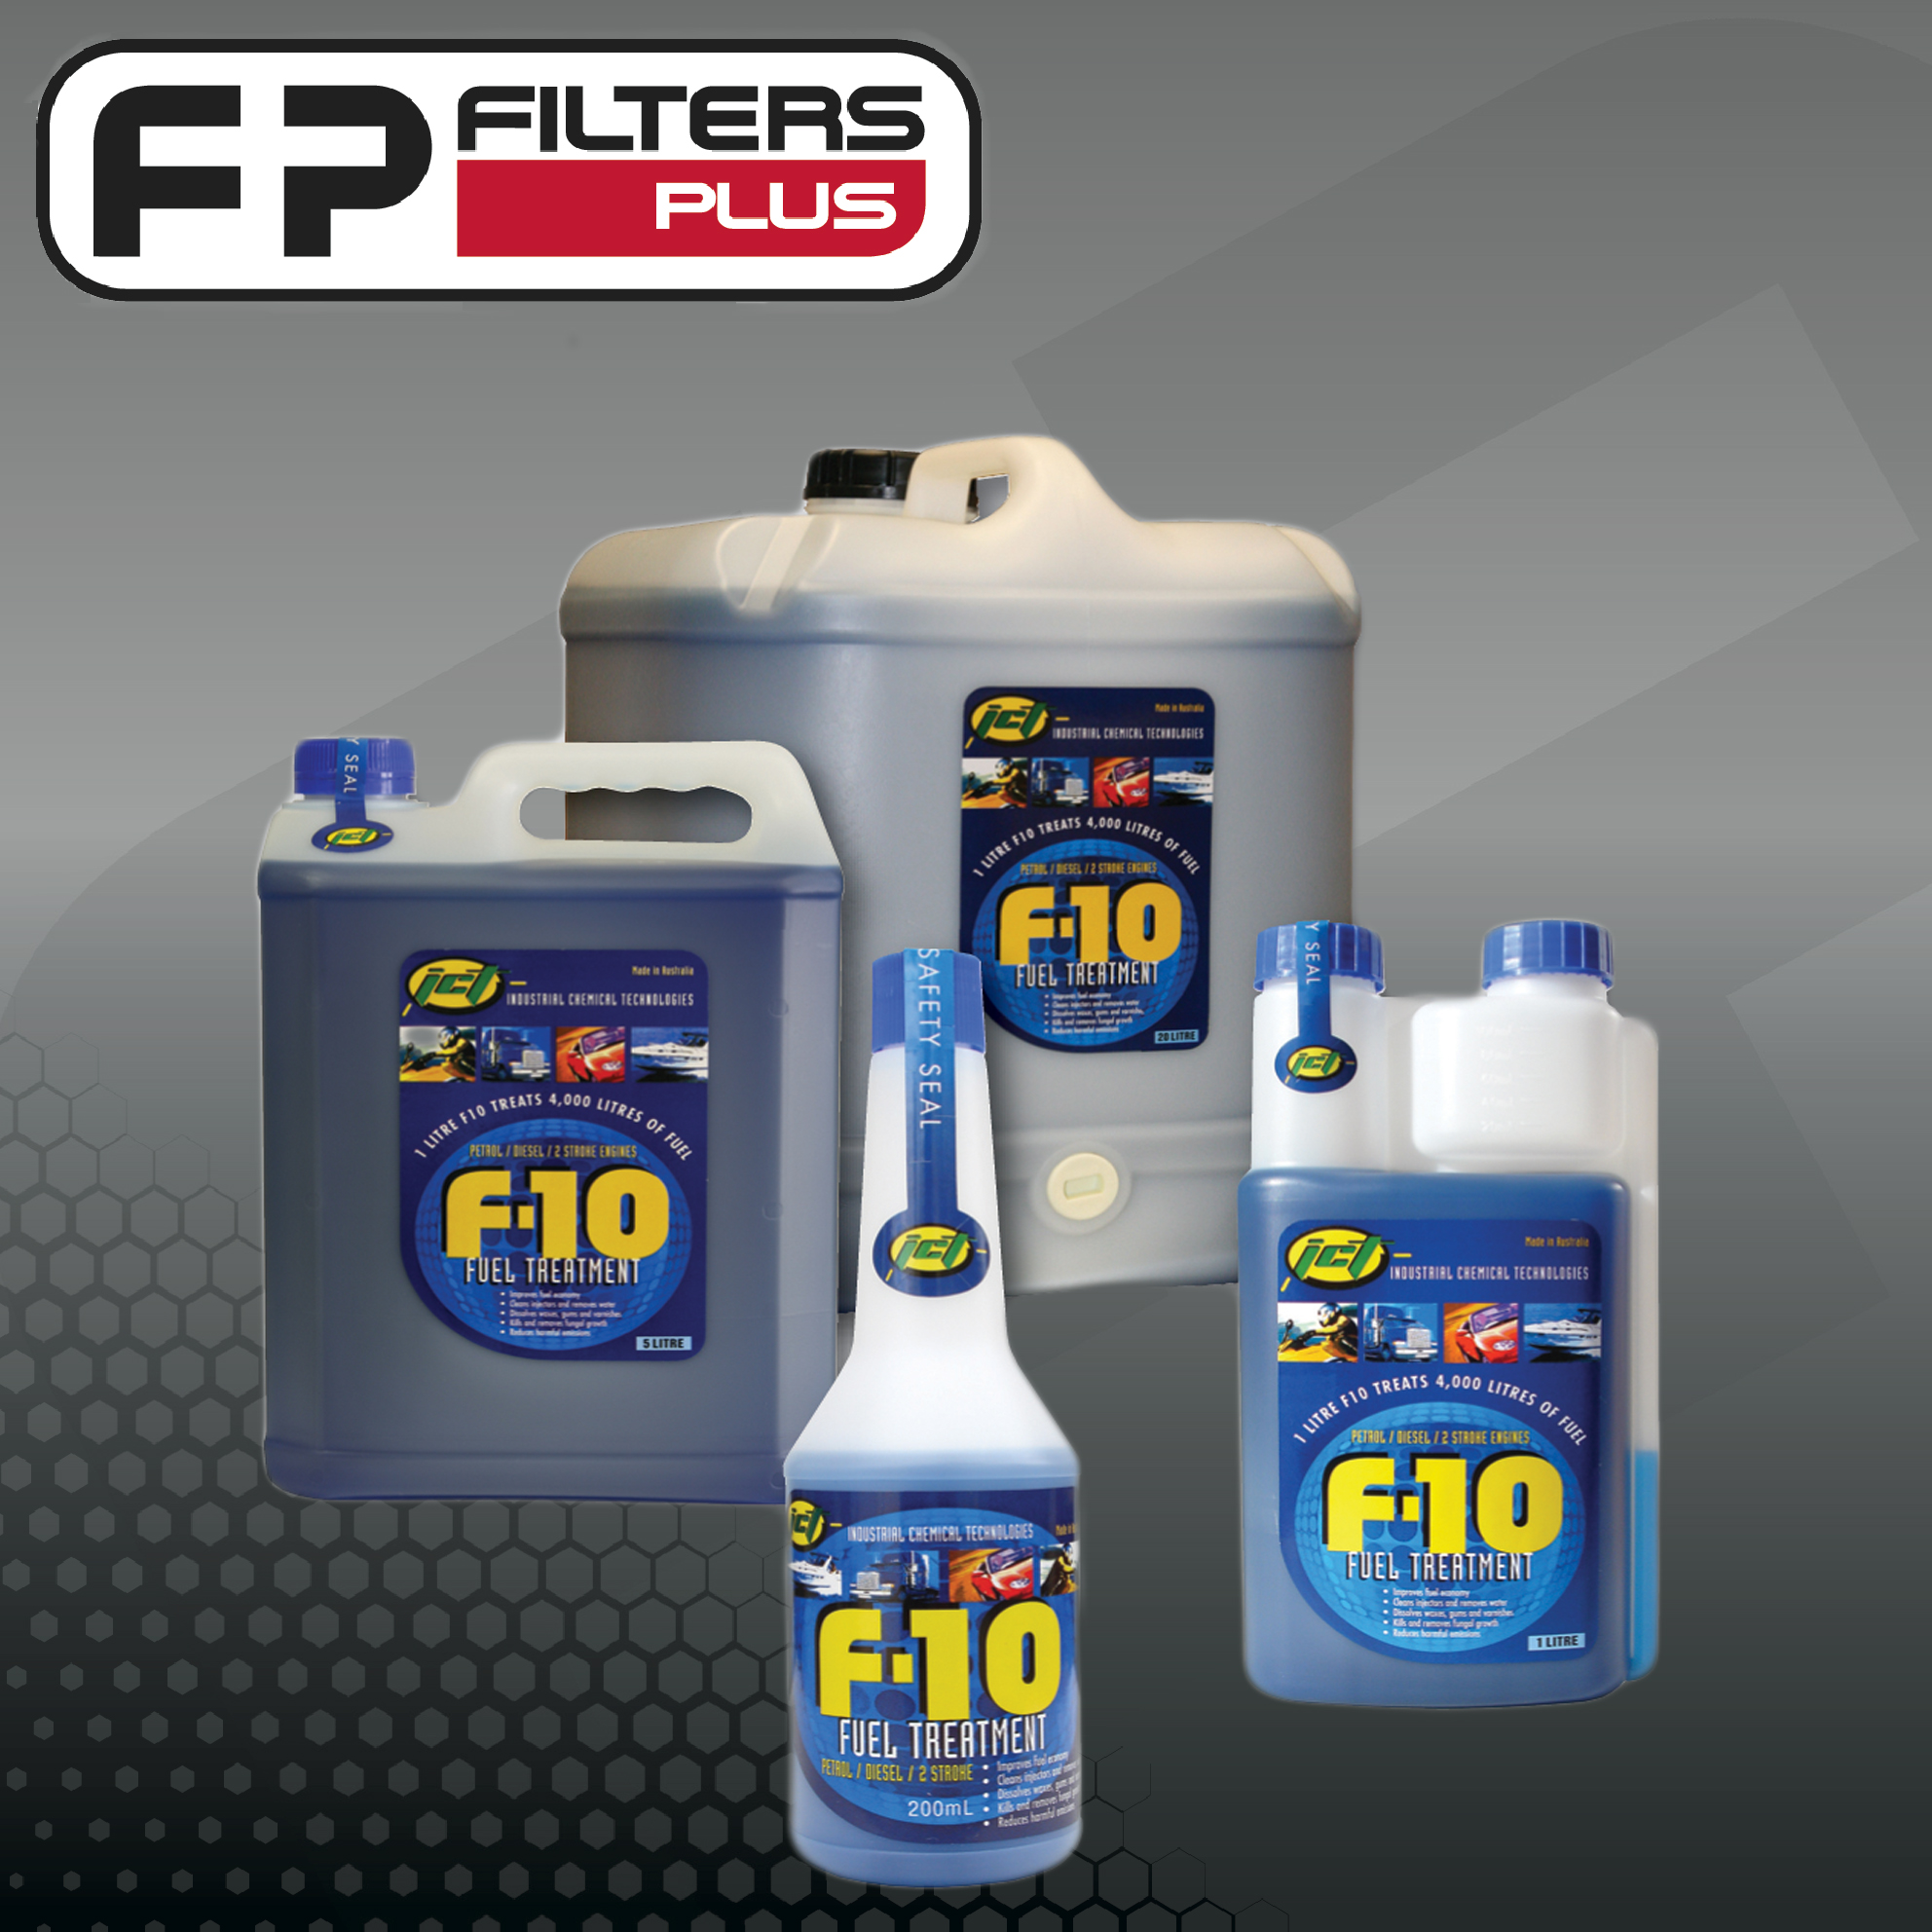 fuel treatment, hand cleaner, degreaser, coolant, truck wash, lubricant